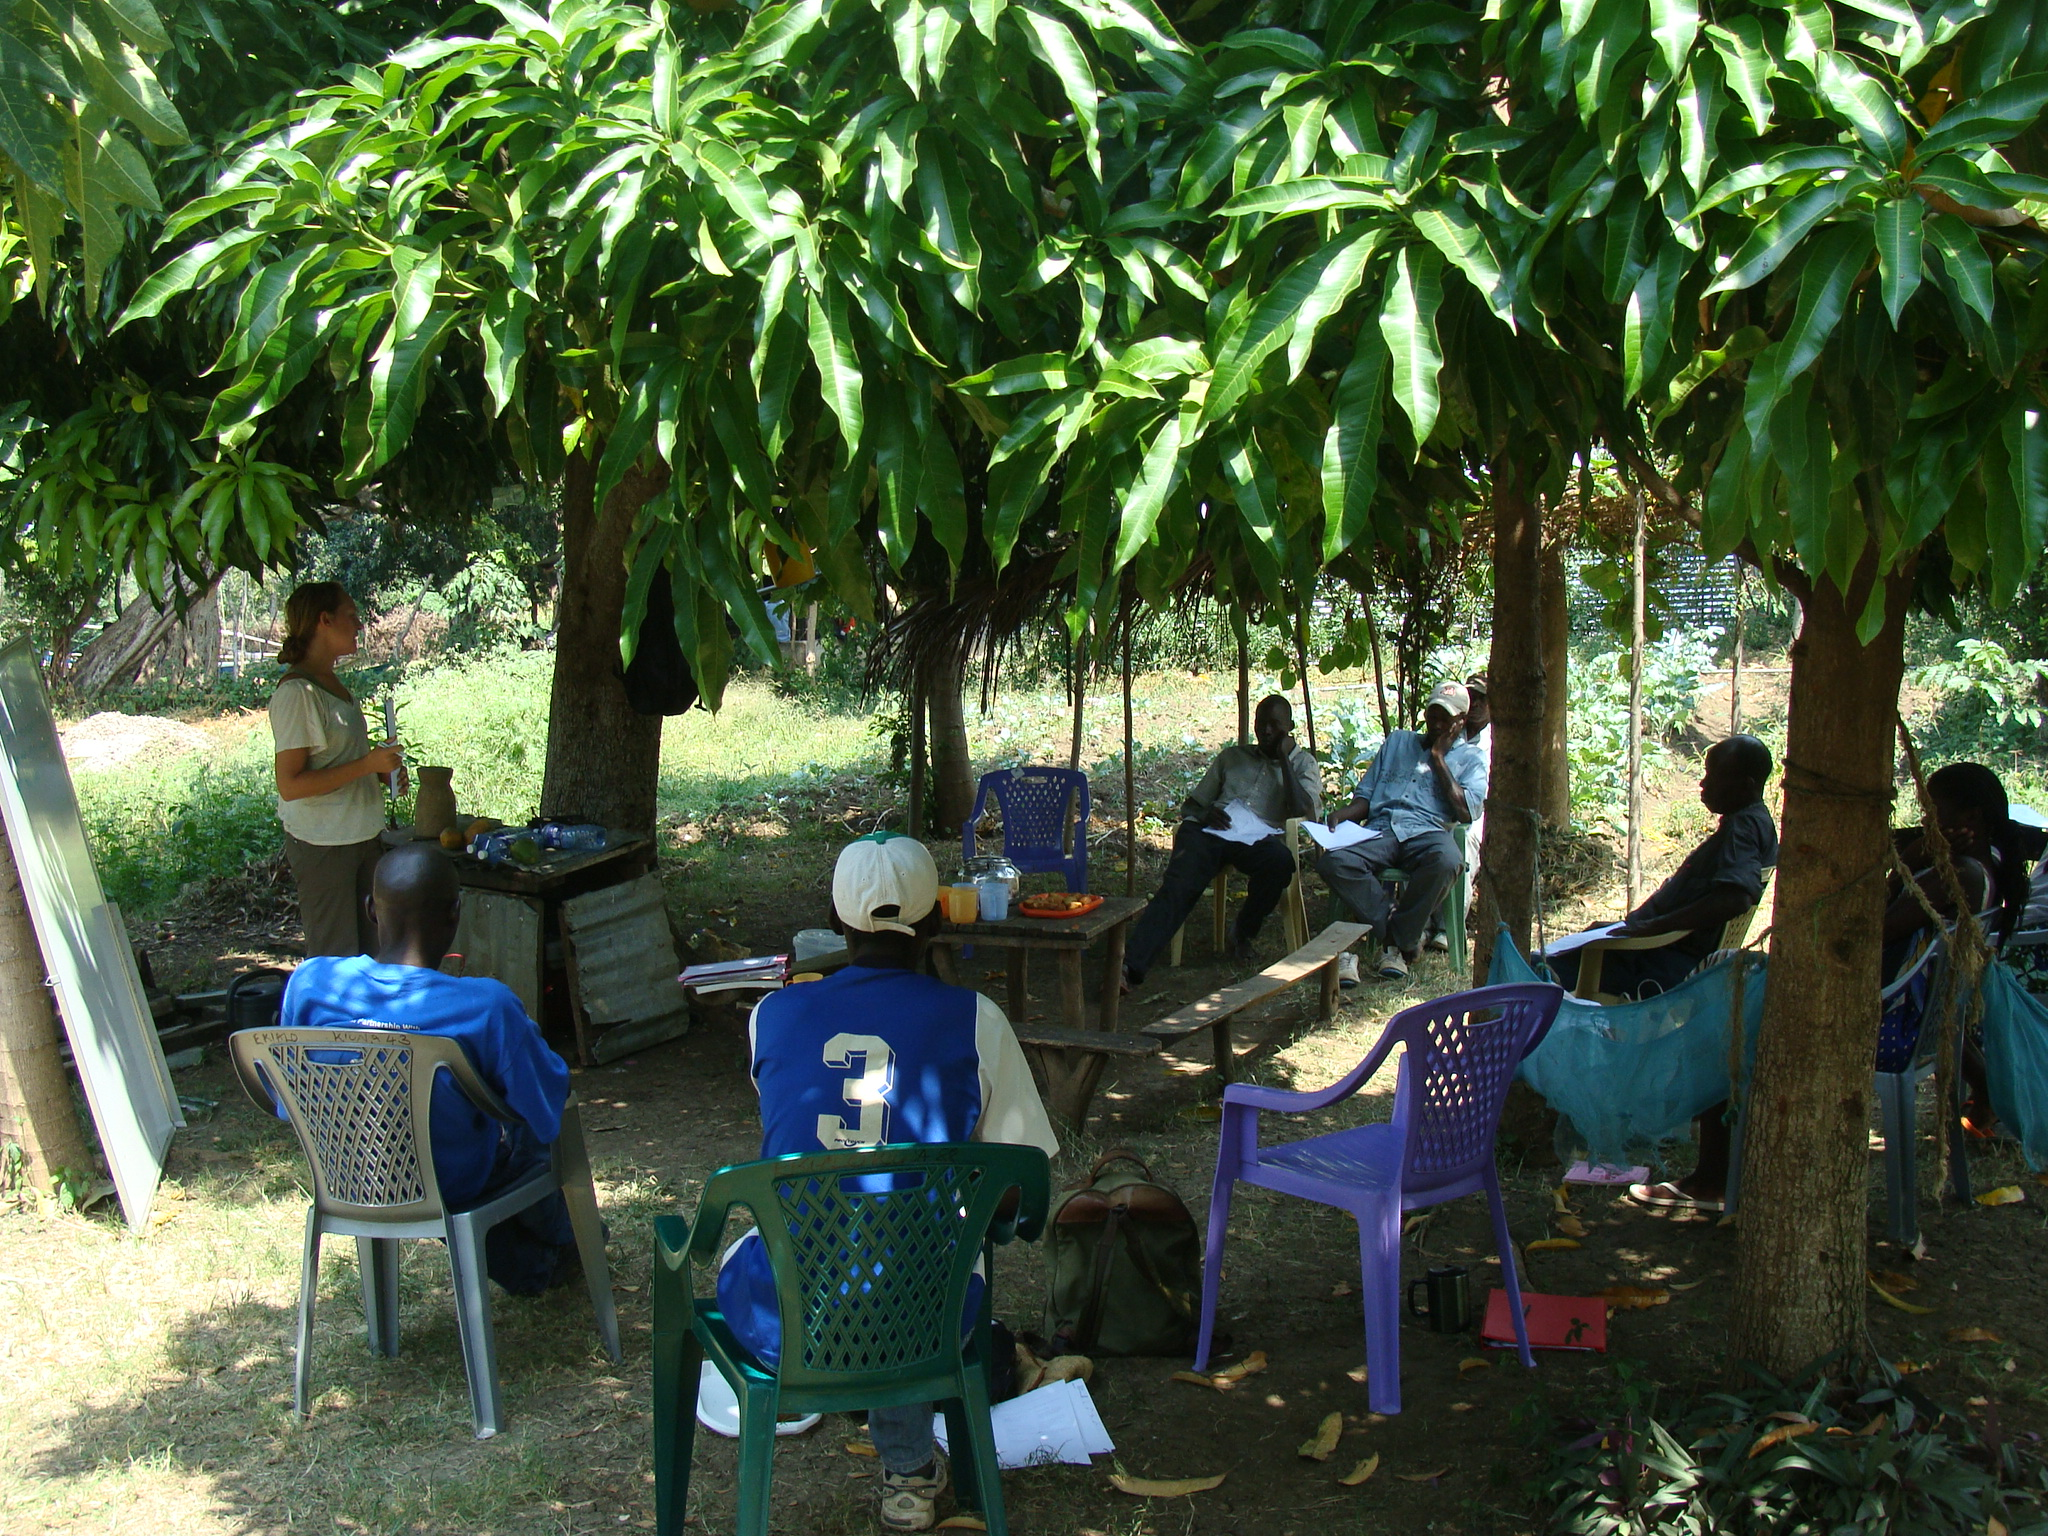 Organic agriculture training session for local farmers at EK Demonstration Farm, 2012